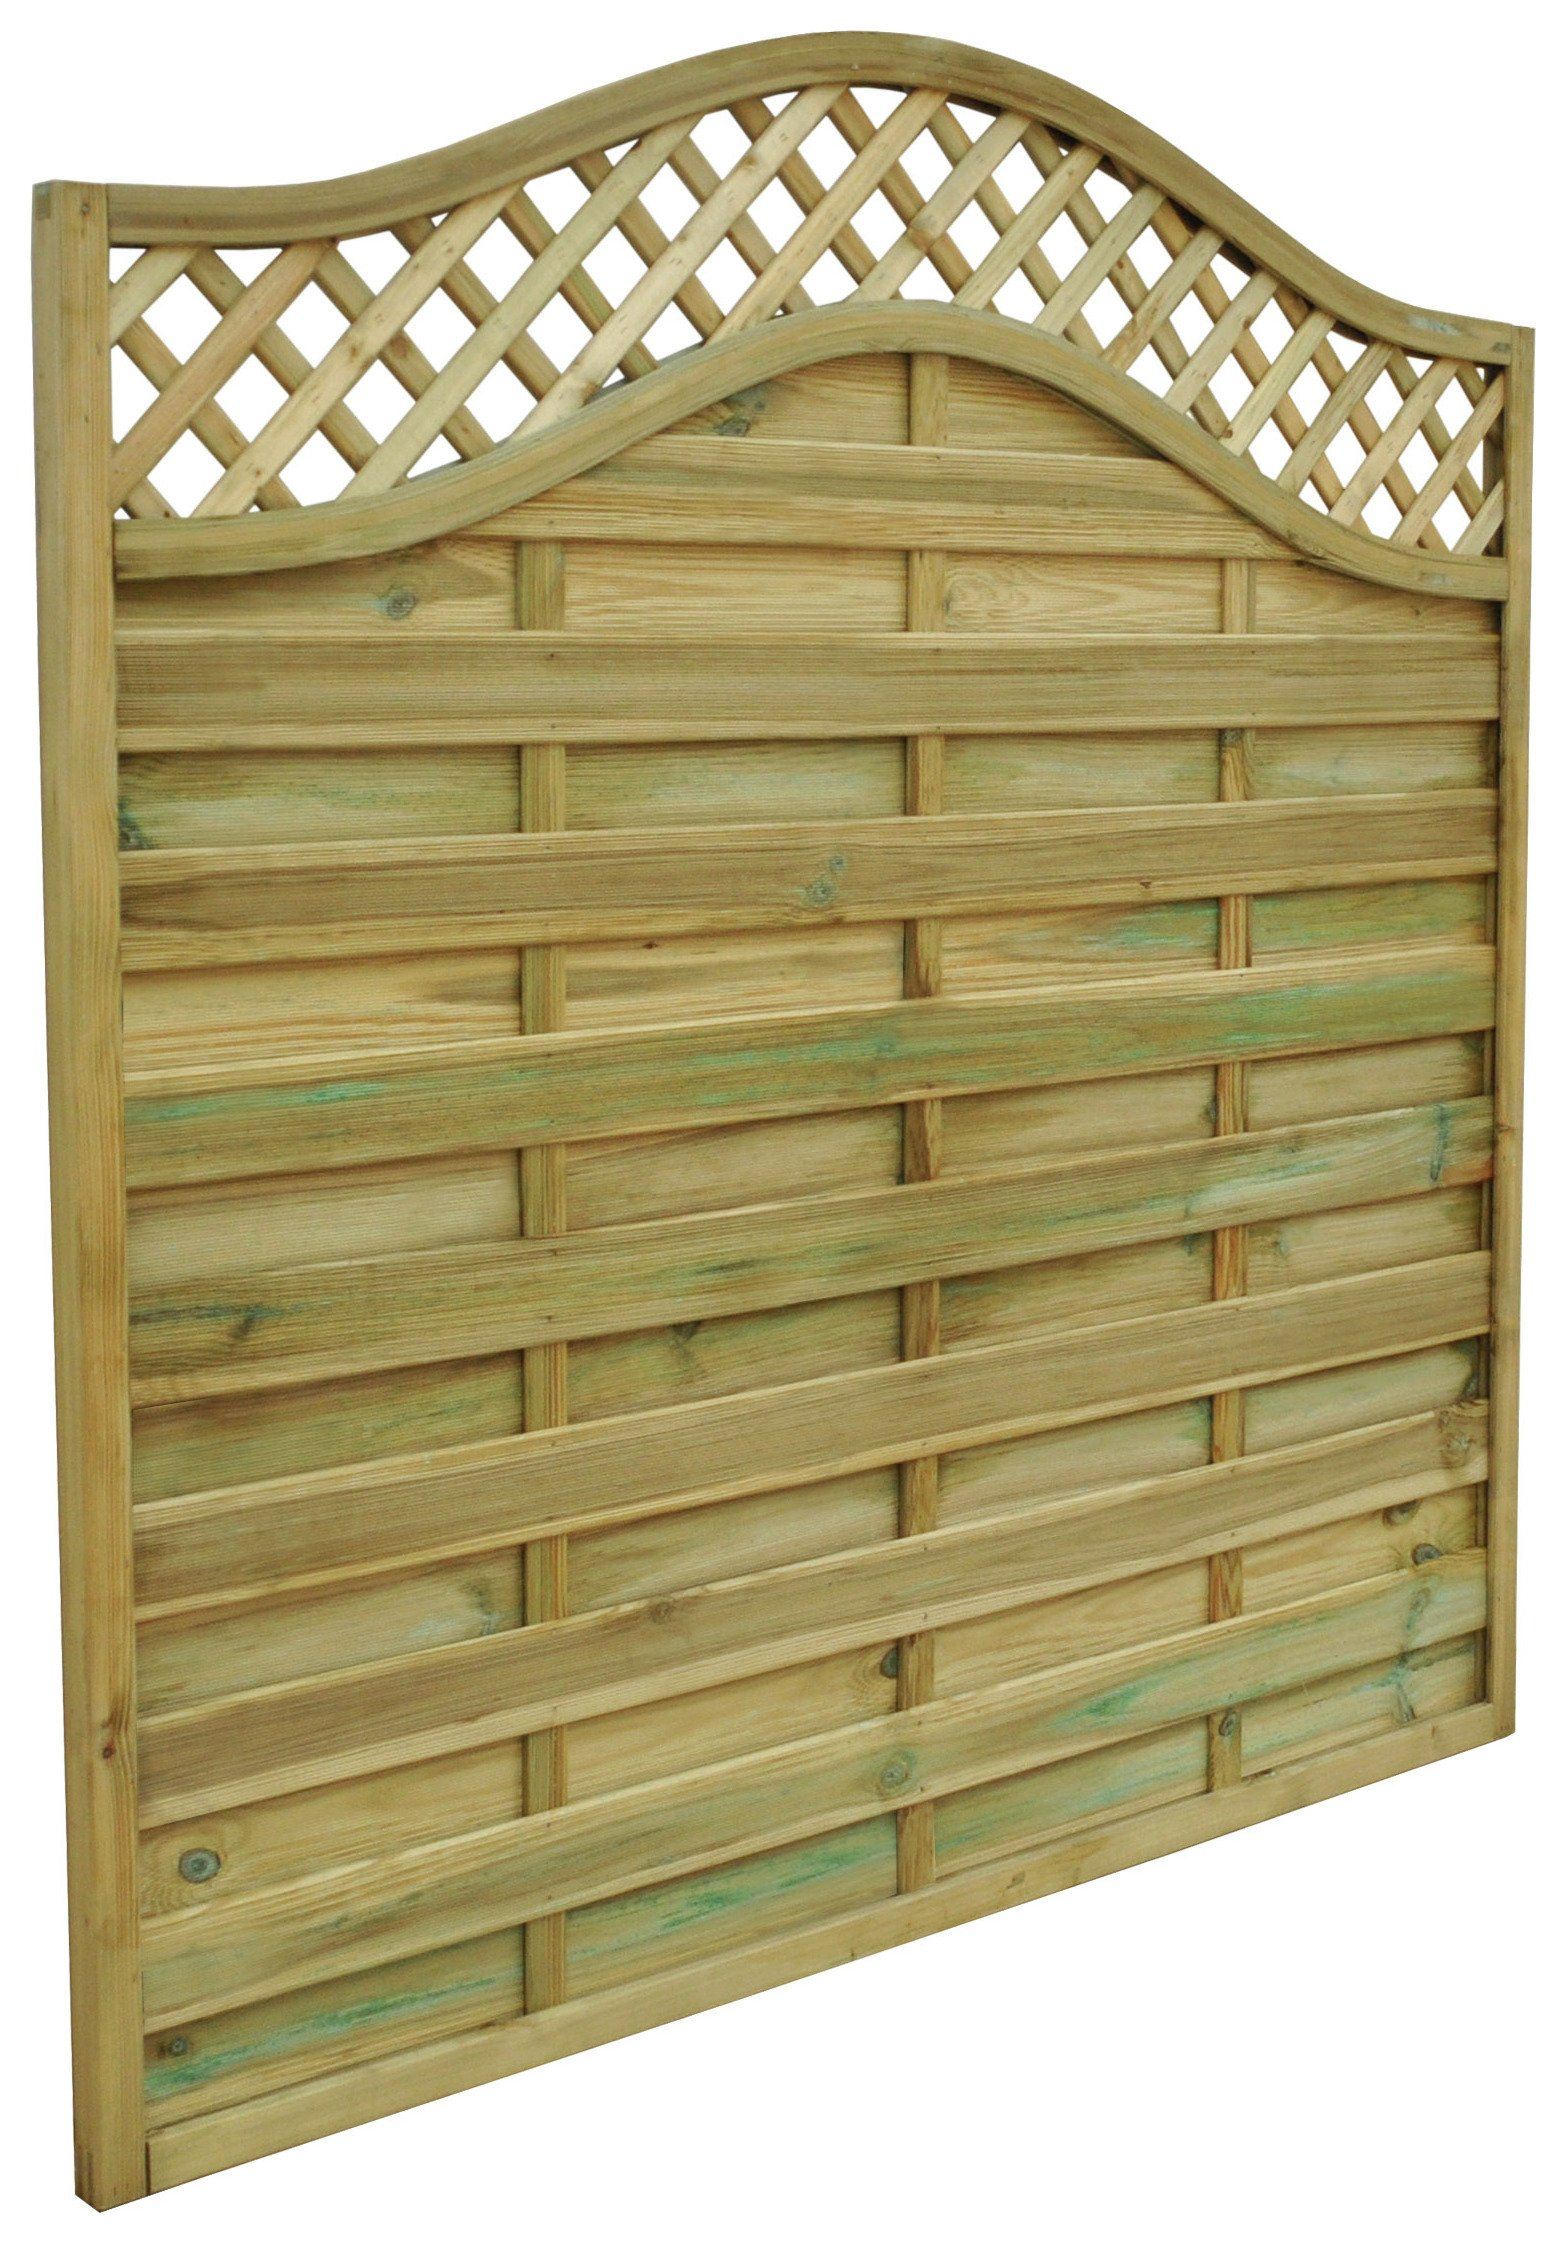 Forest 1.2m Prague Fence Panel - Pack of 8. lowest price